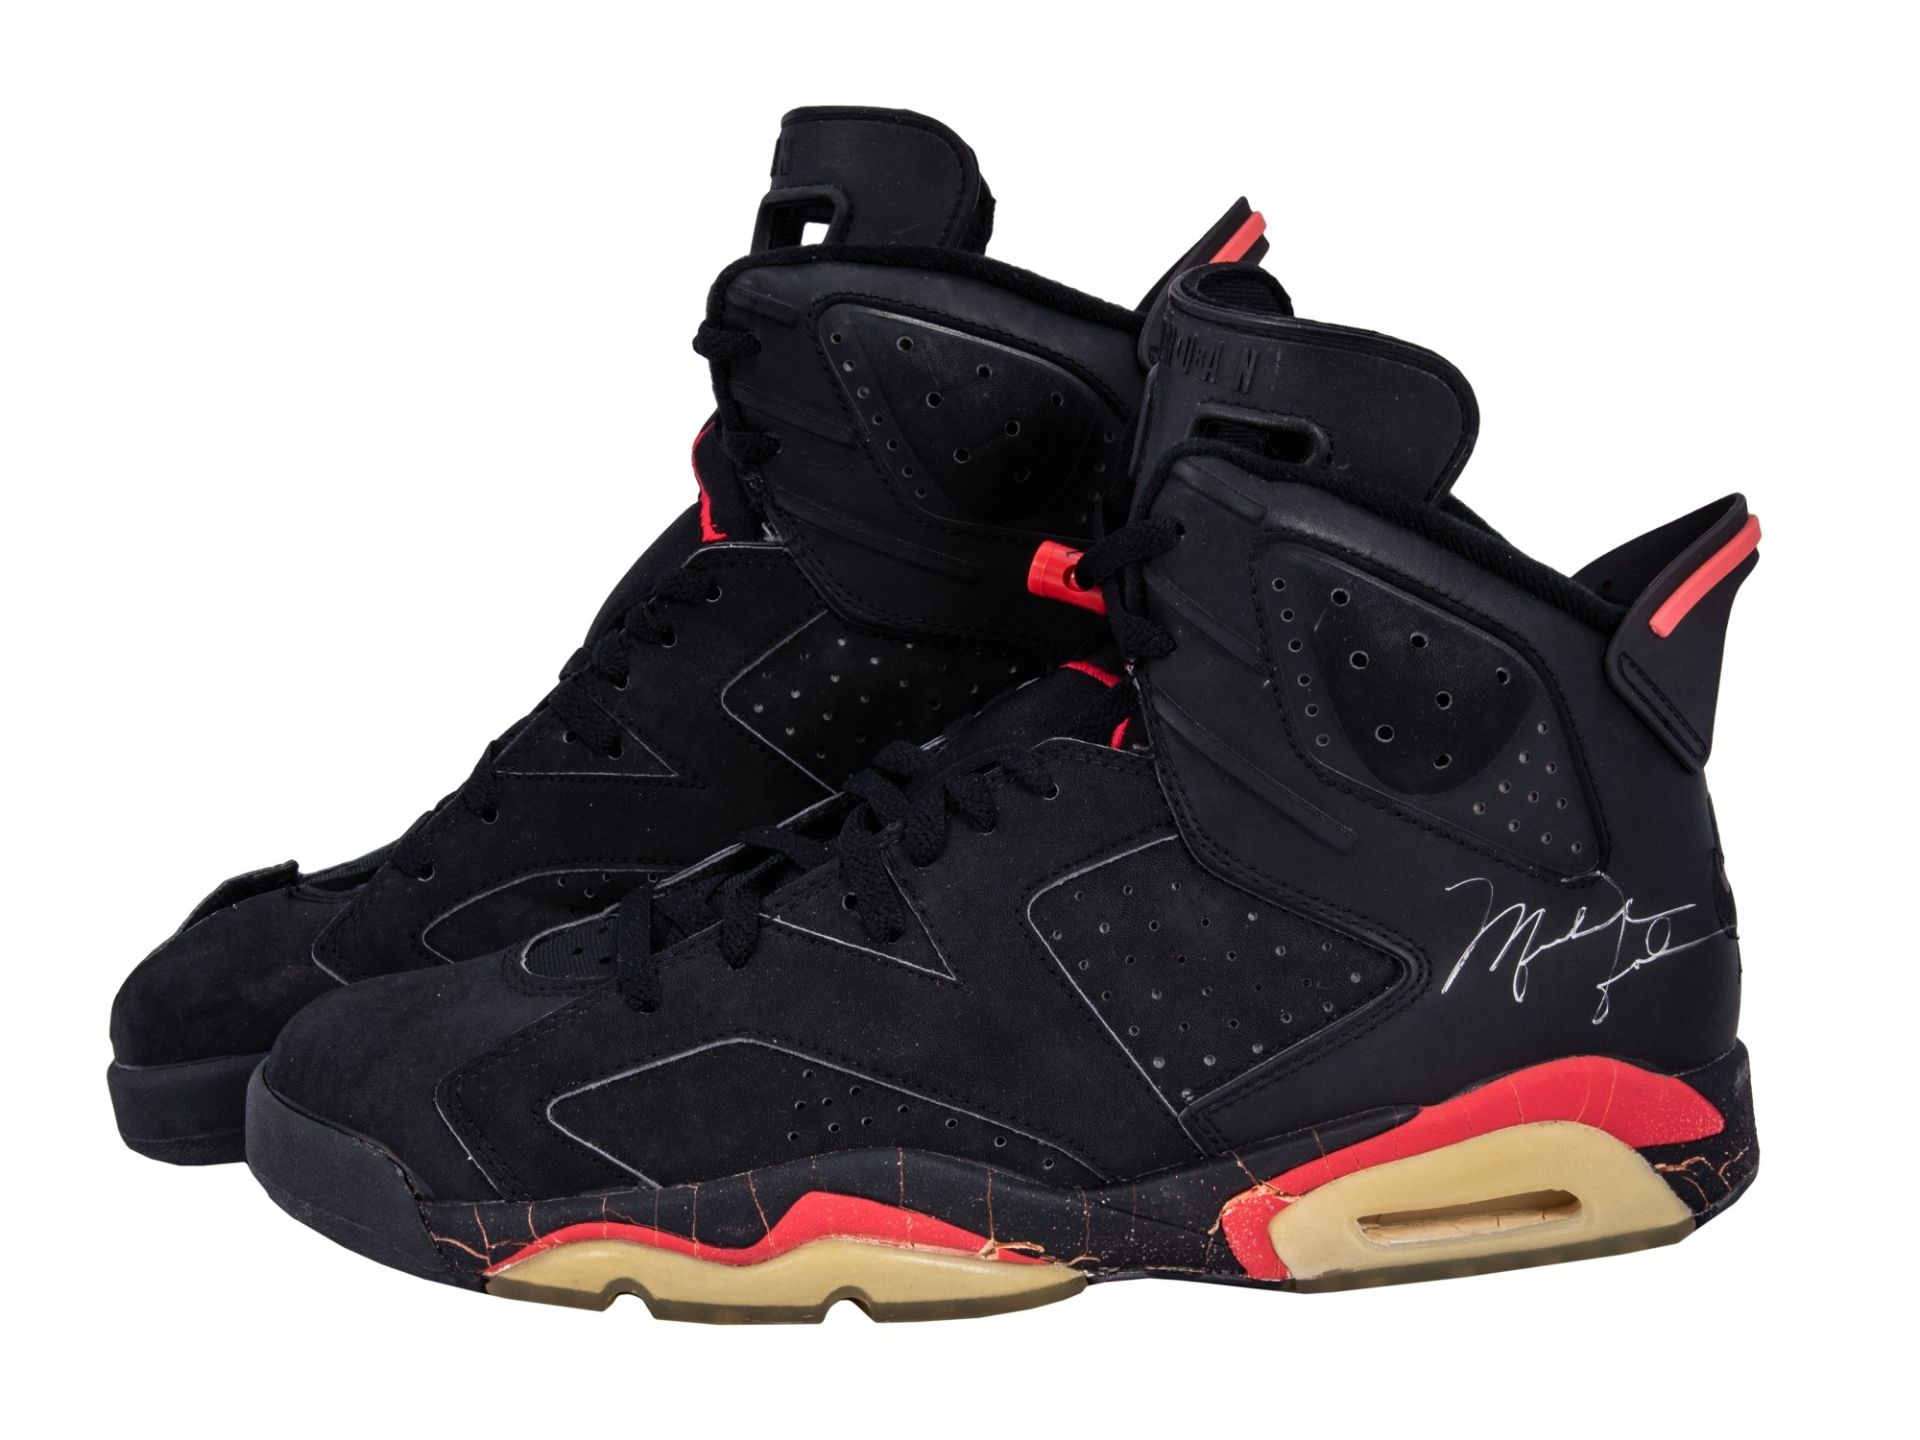 These Air Jordans Worn by Michael Jordan Could Become the Most Expensive Sneakers in History